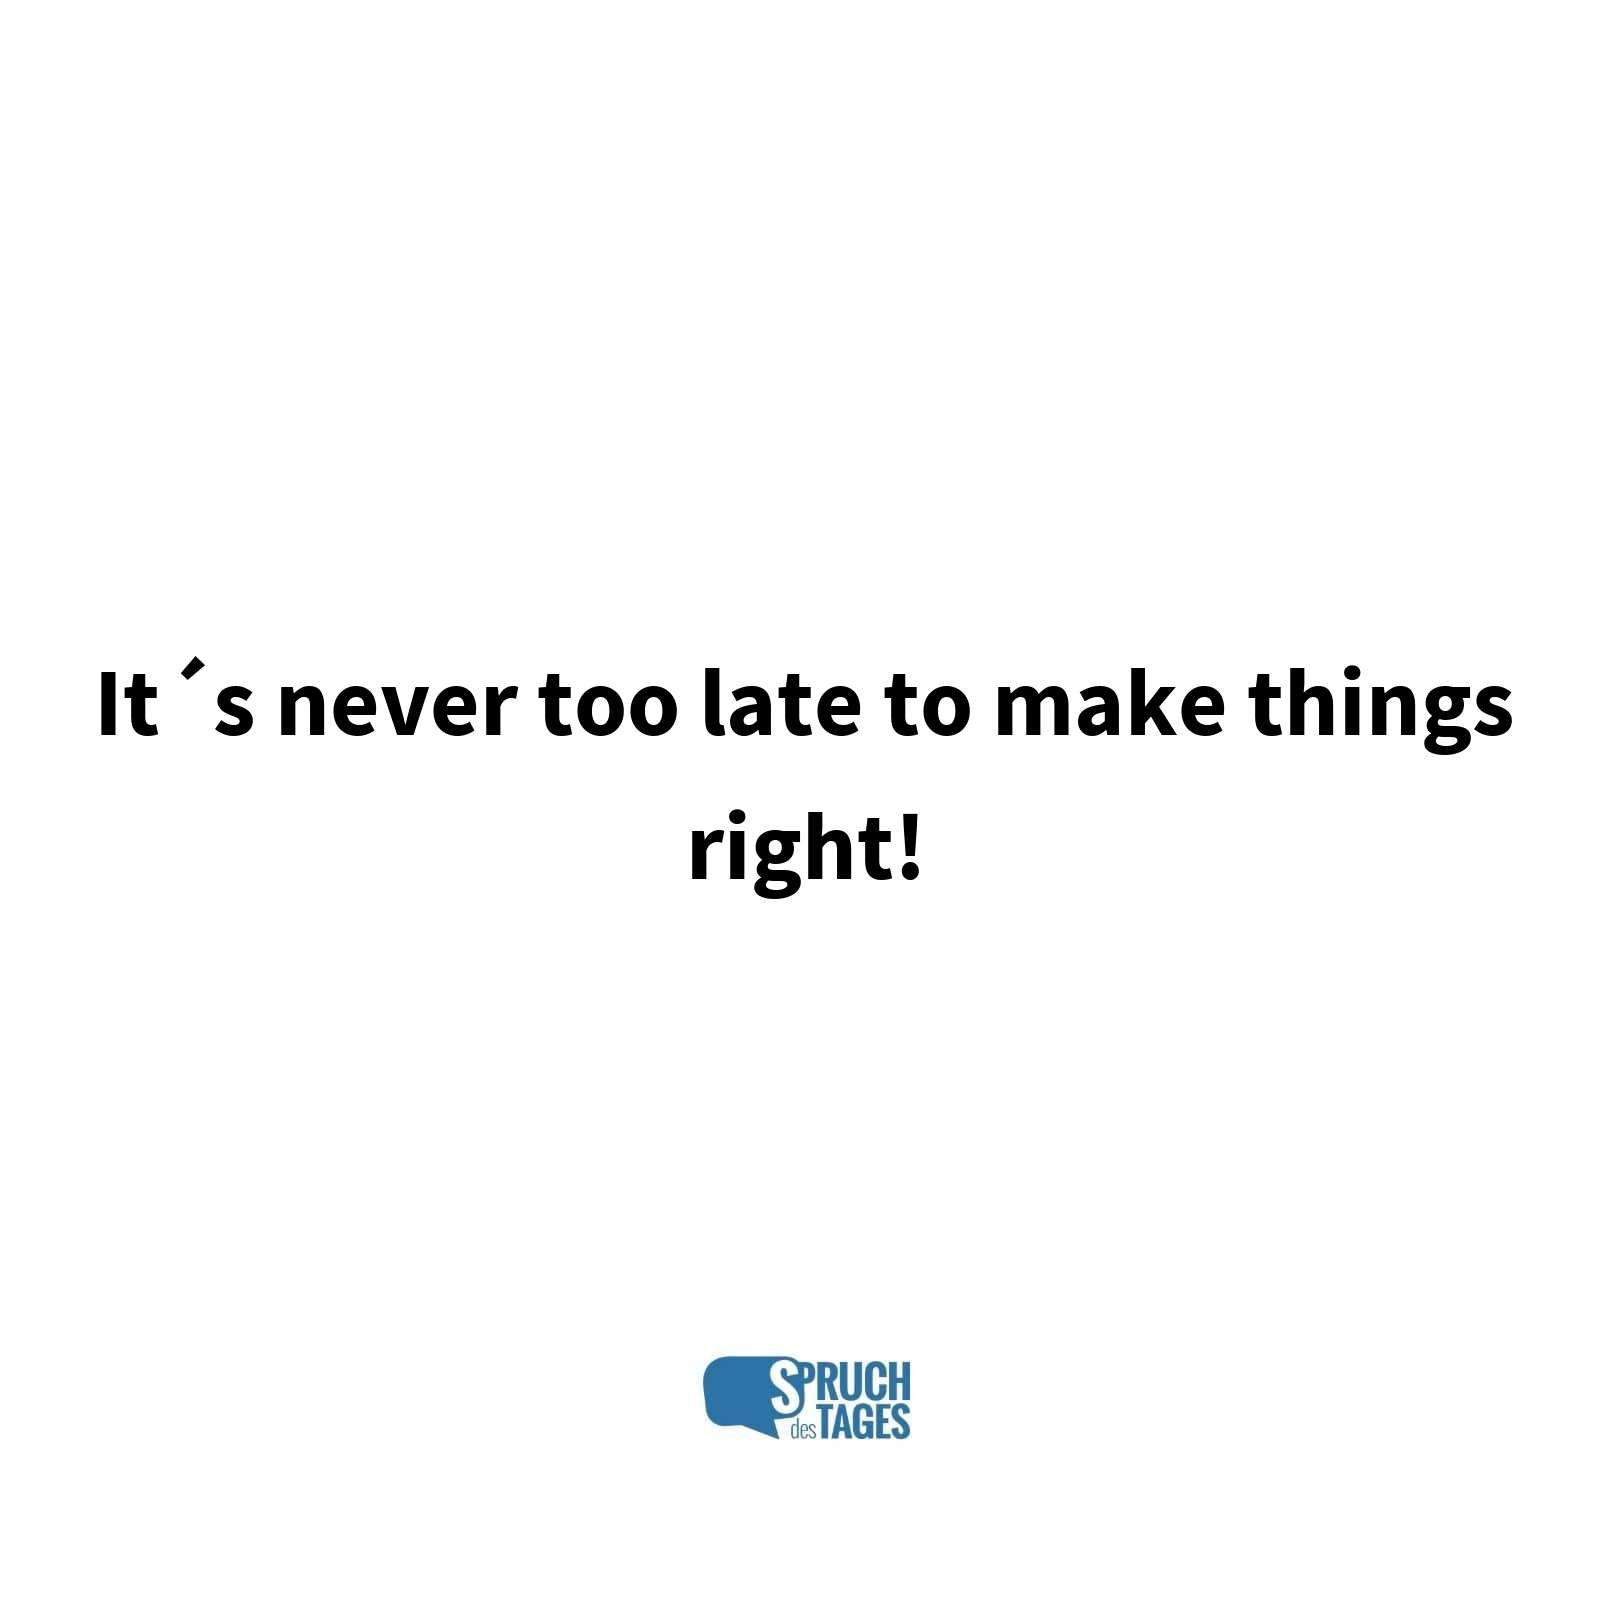 englisch sprüche facebook It´s never too late to make things right! englisch sprüche facebook